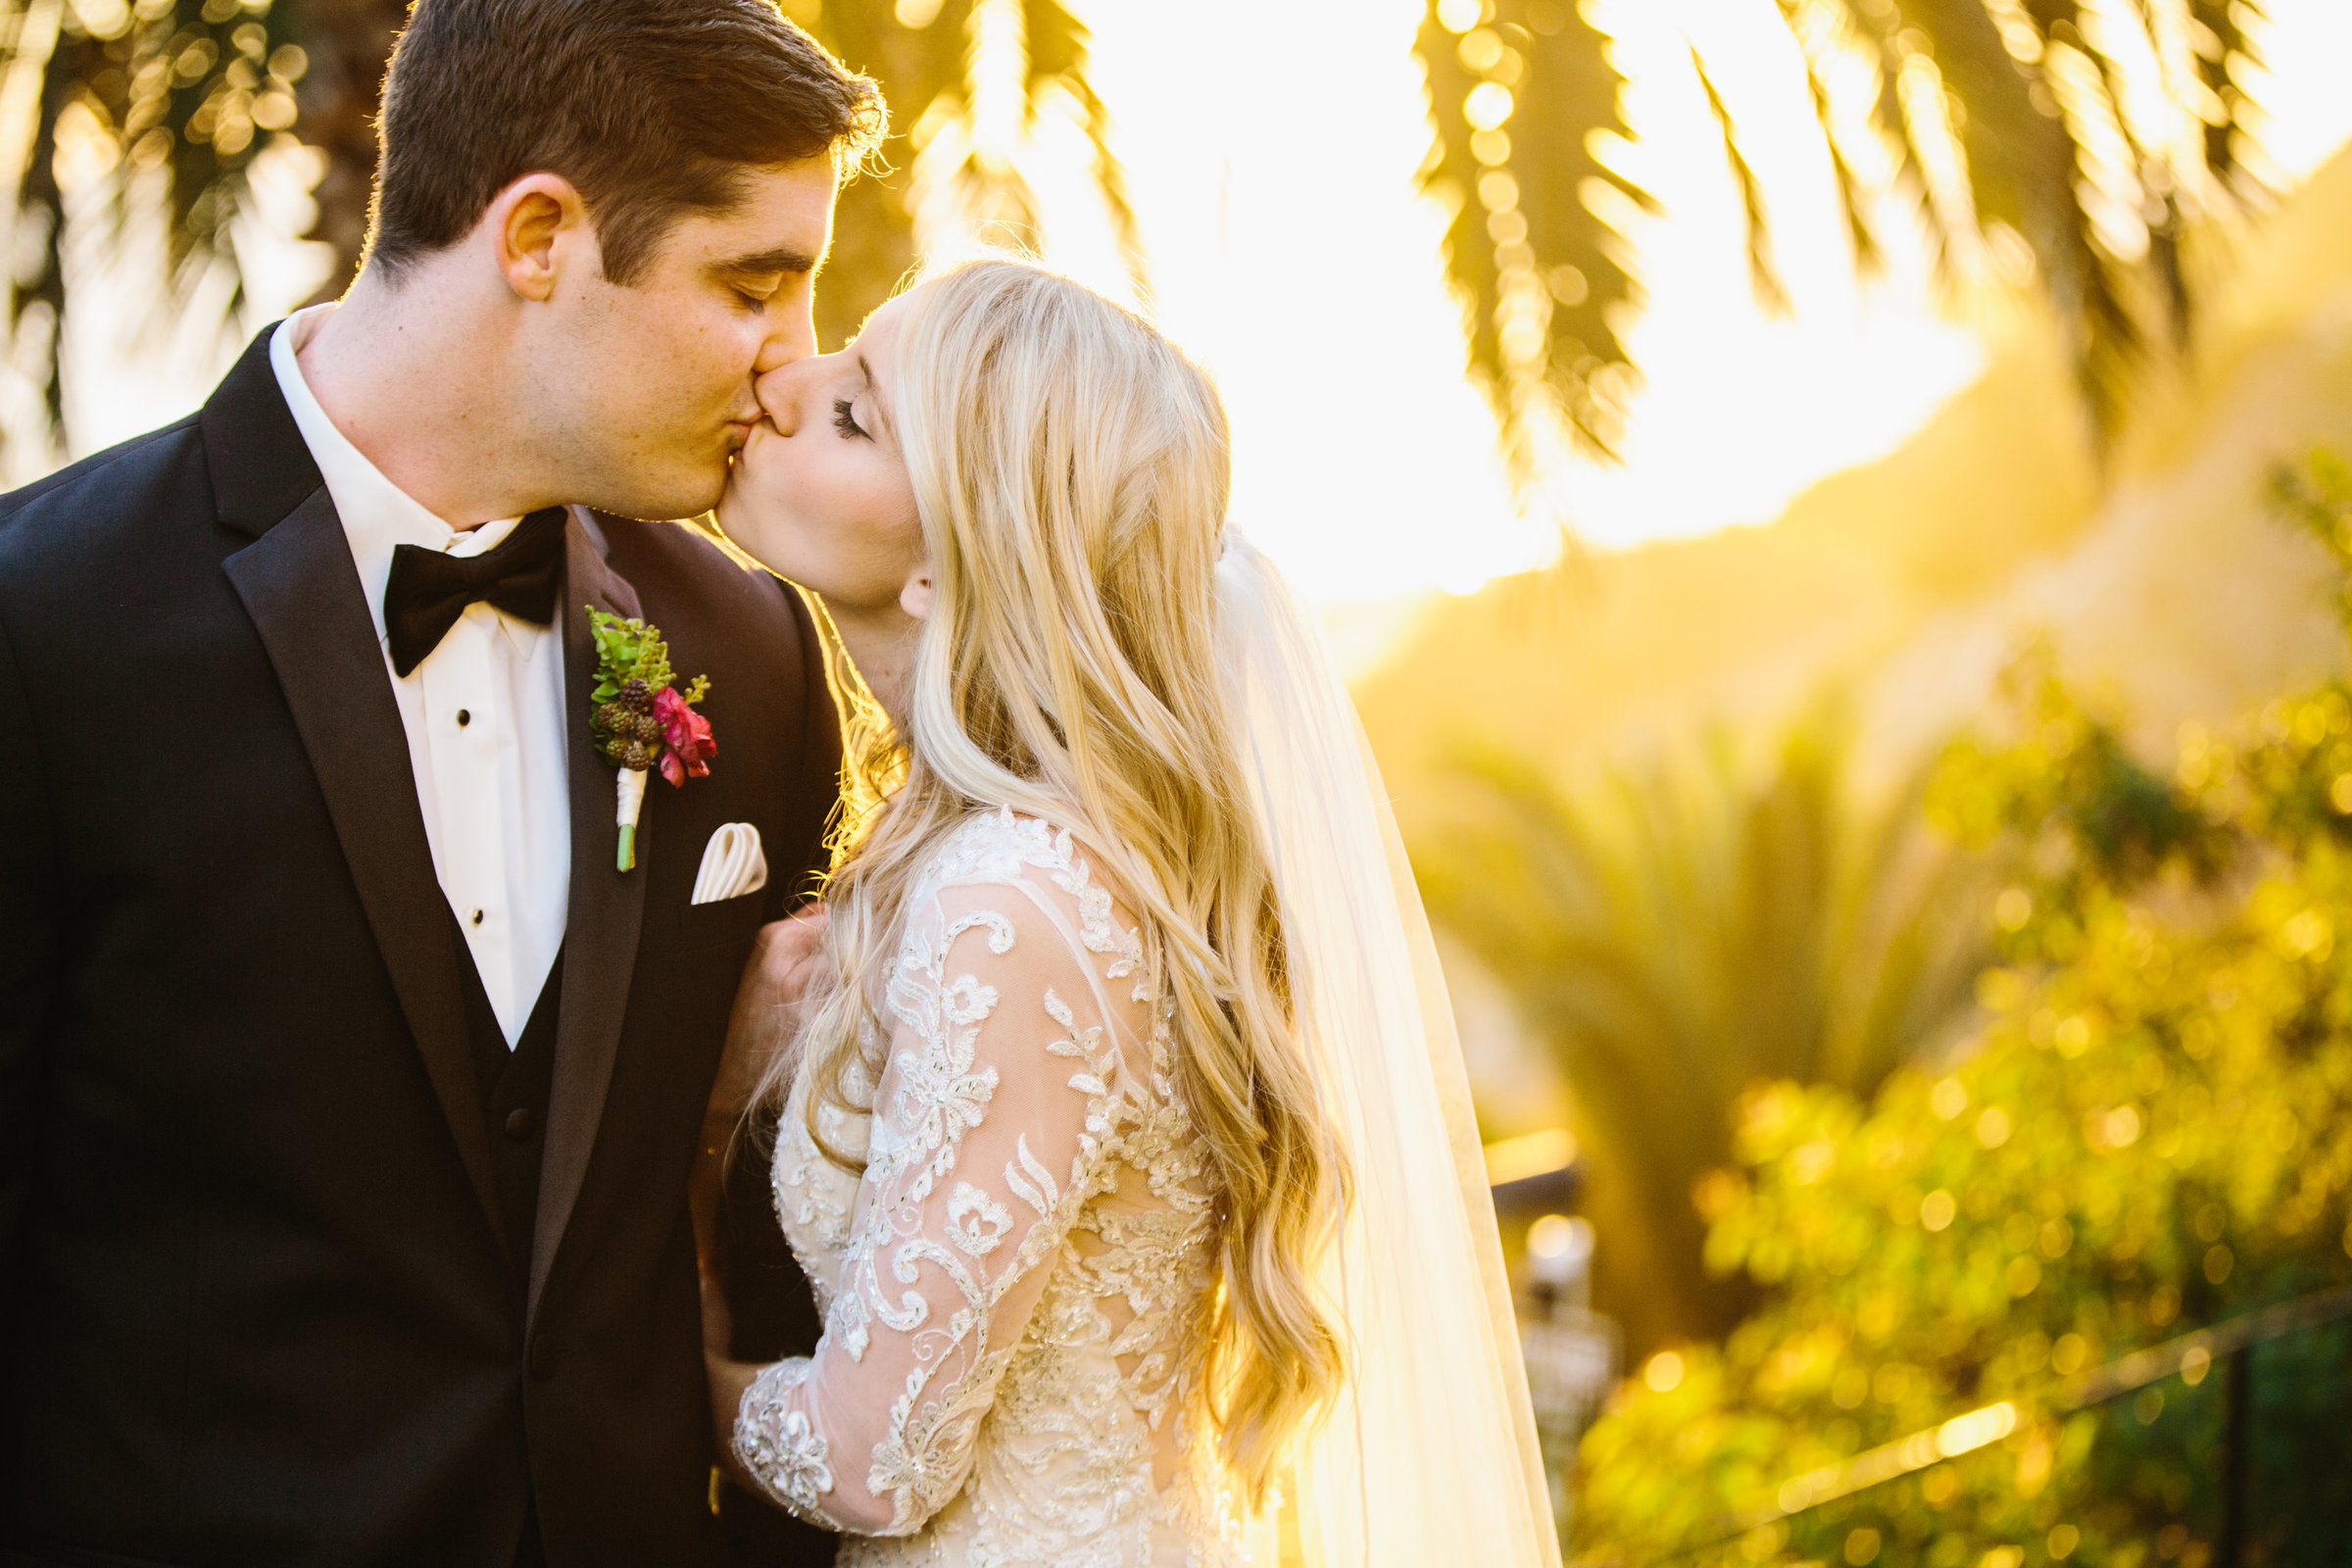 Bride and Groom Kissing in Warm Sunlight at Bel Air Bay Club